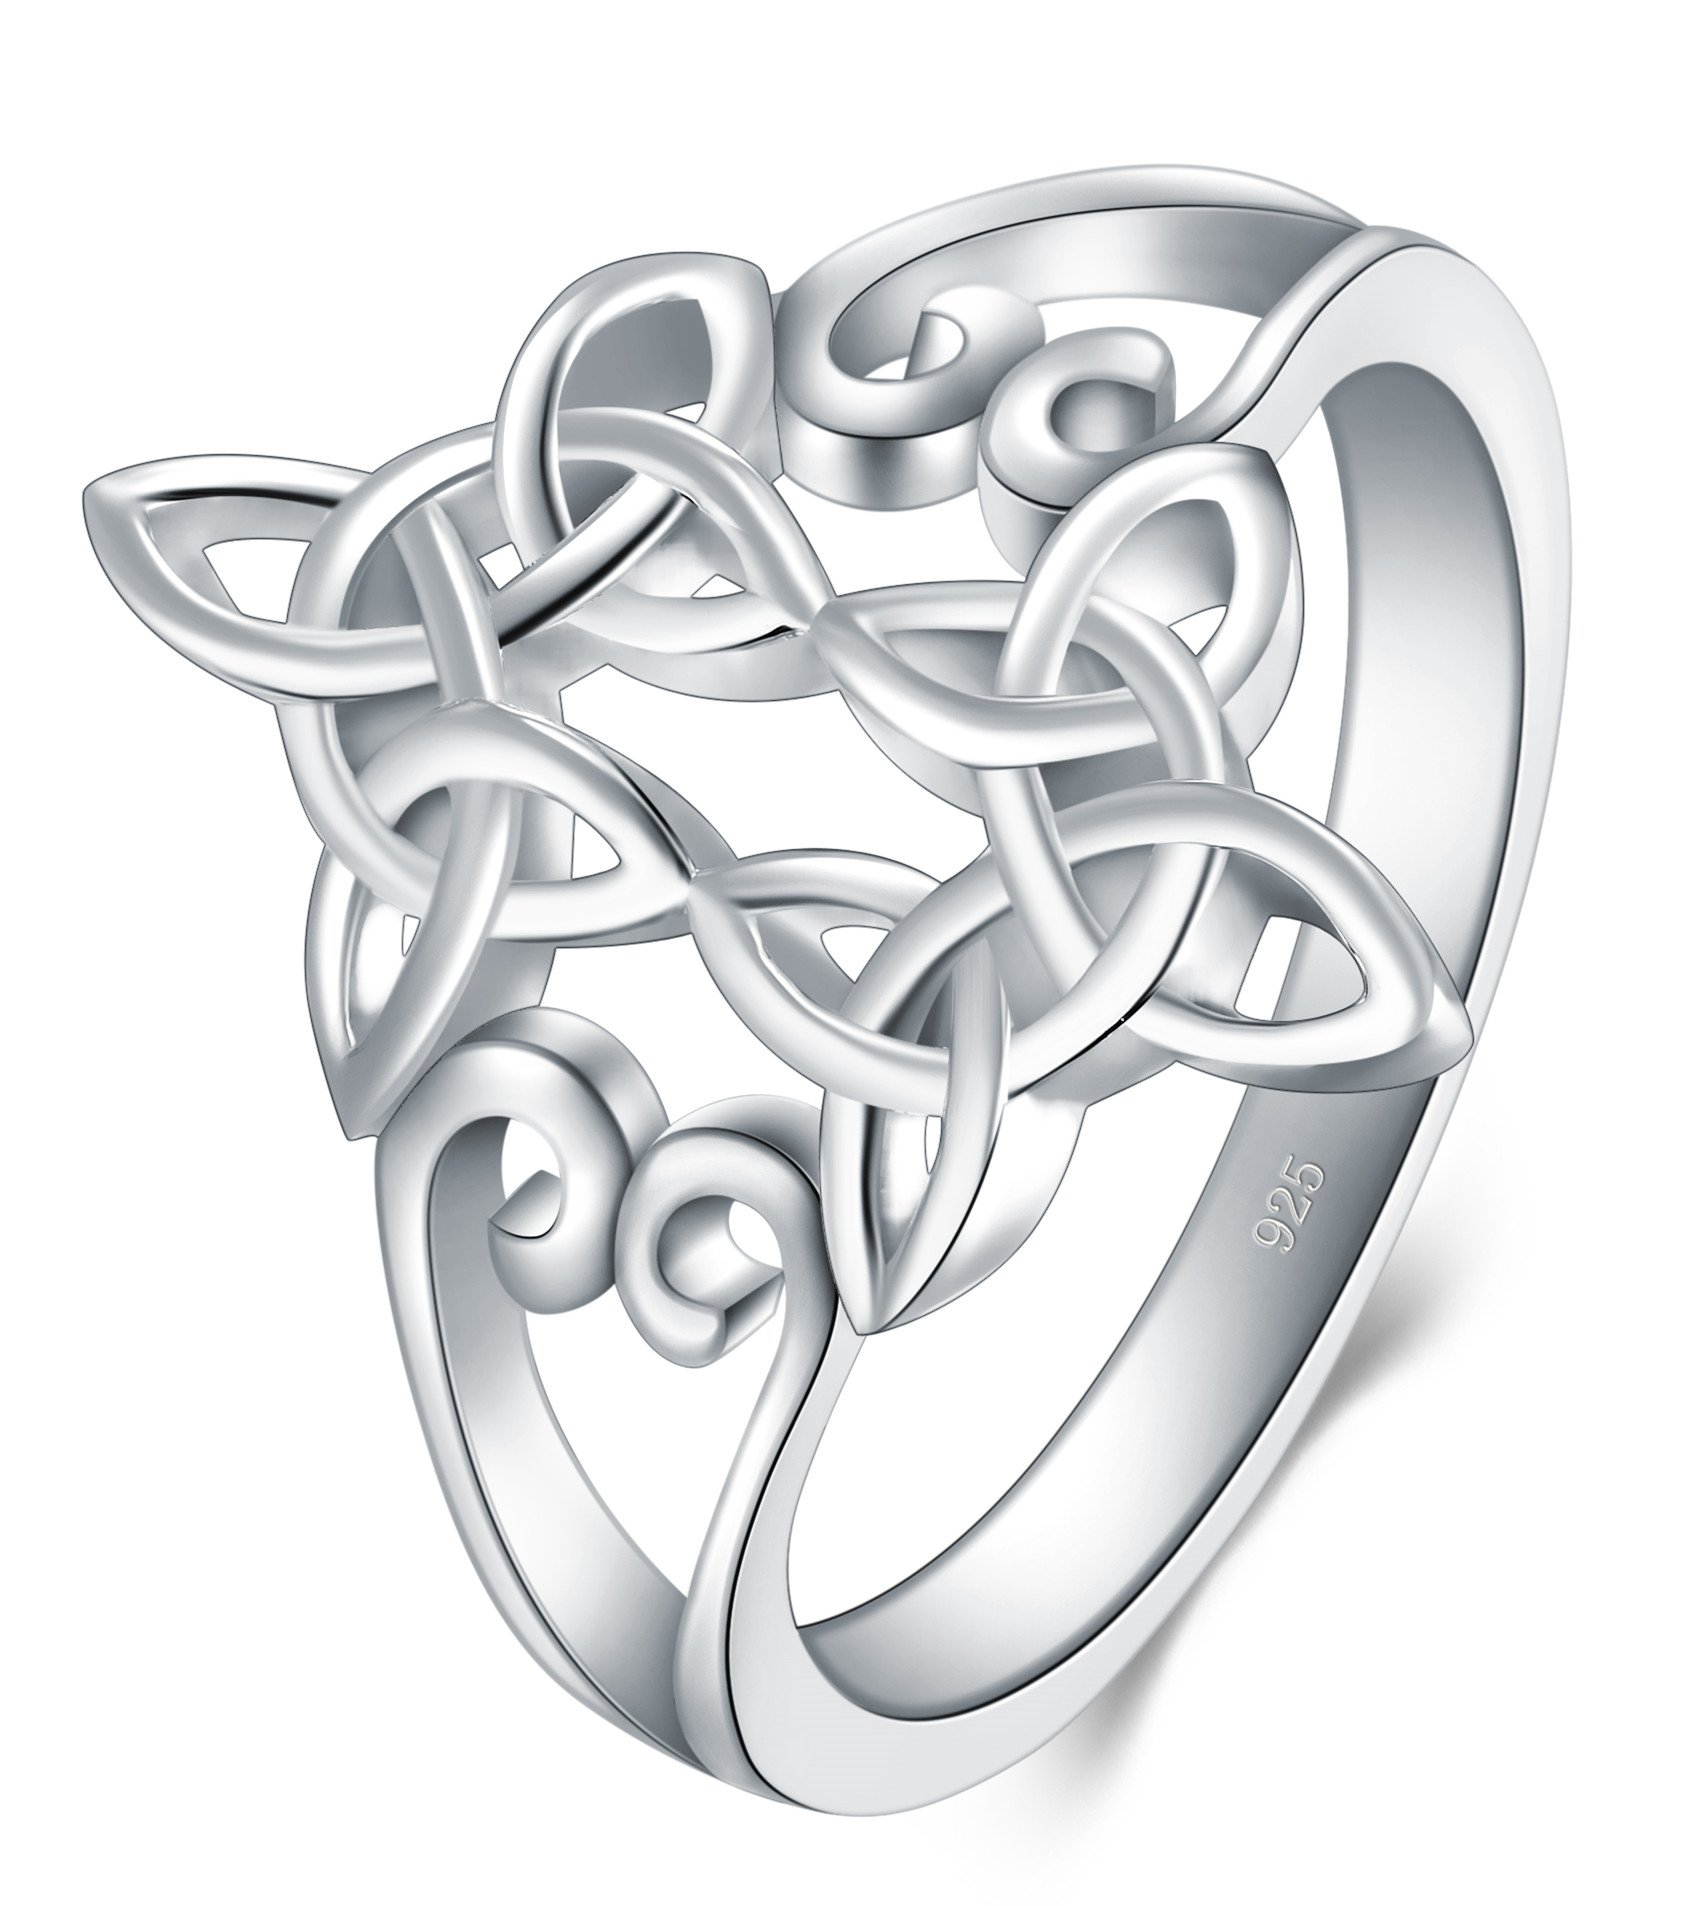 BORUO 925 Sterling Silver Ring Celtic Knot Heart Cross High Polish Tarnish Resistant Eternity Wedding Band Stackable Ring Size 9 by BORUO (Image #3)